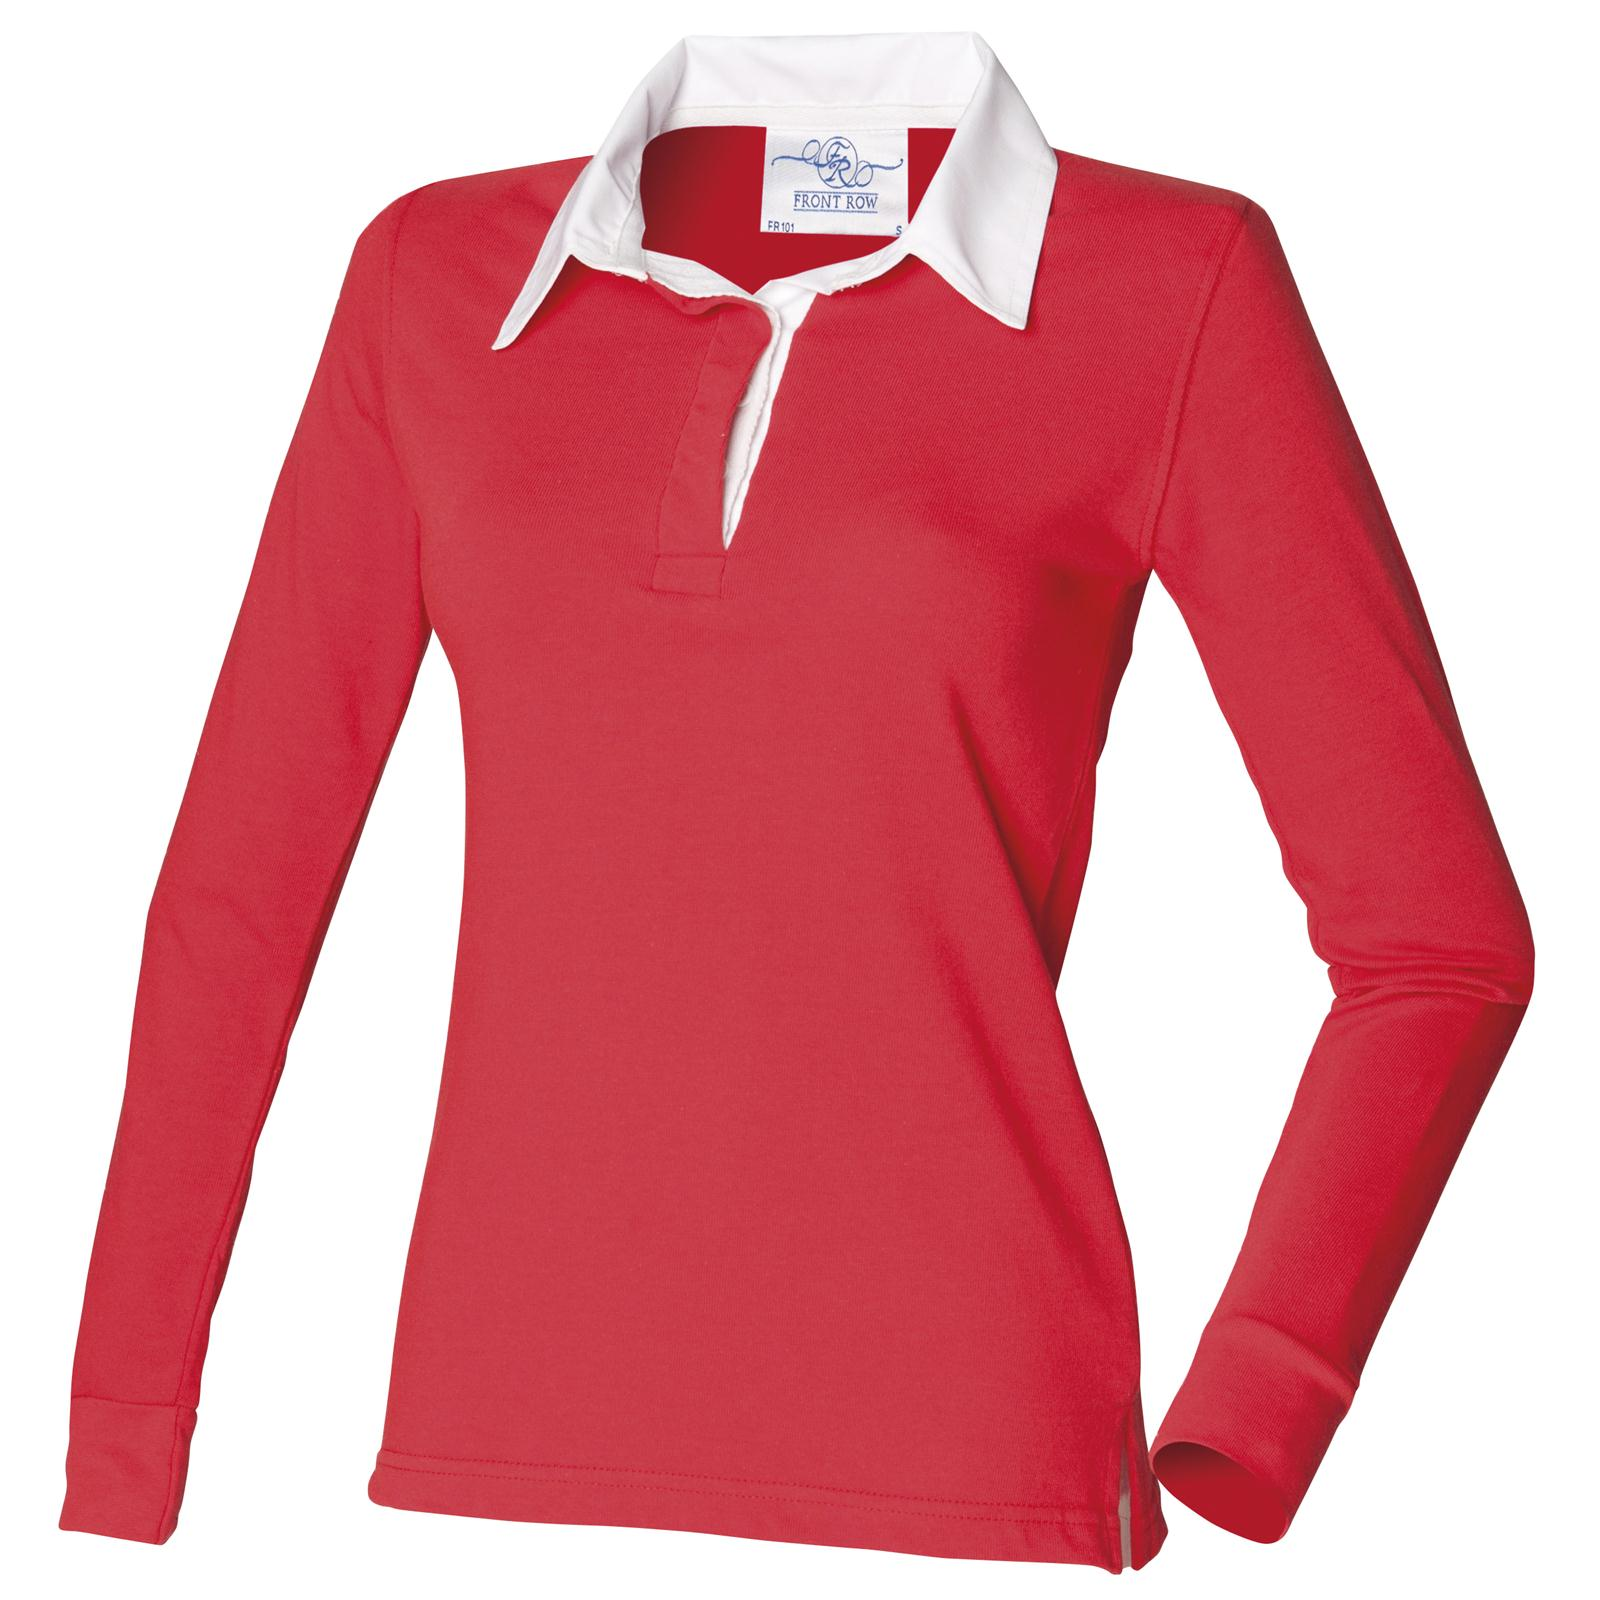 new front row womens sleeve plain rugby style